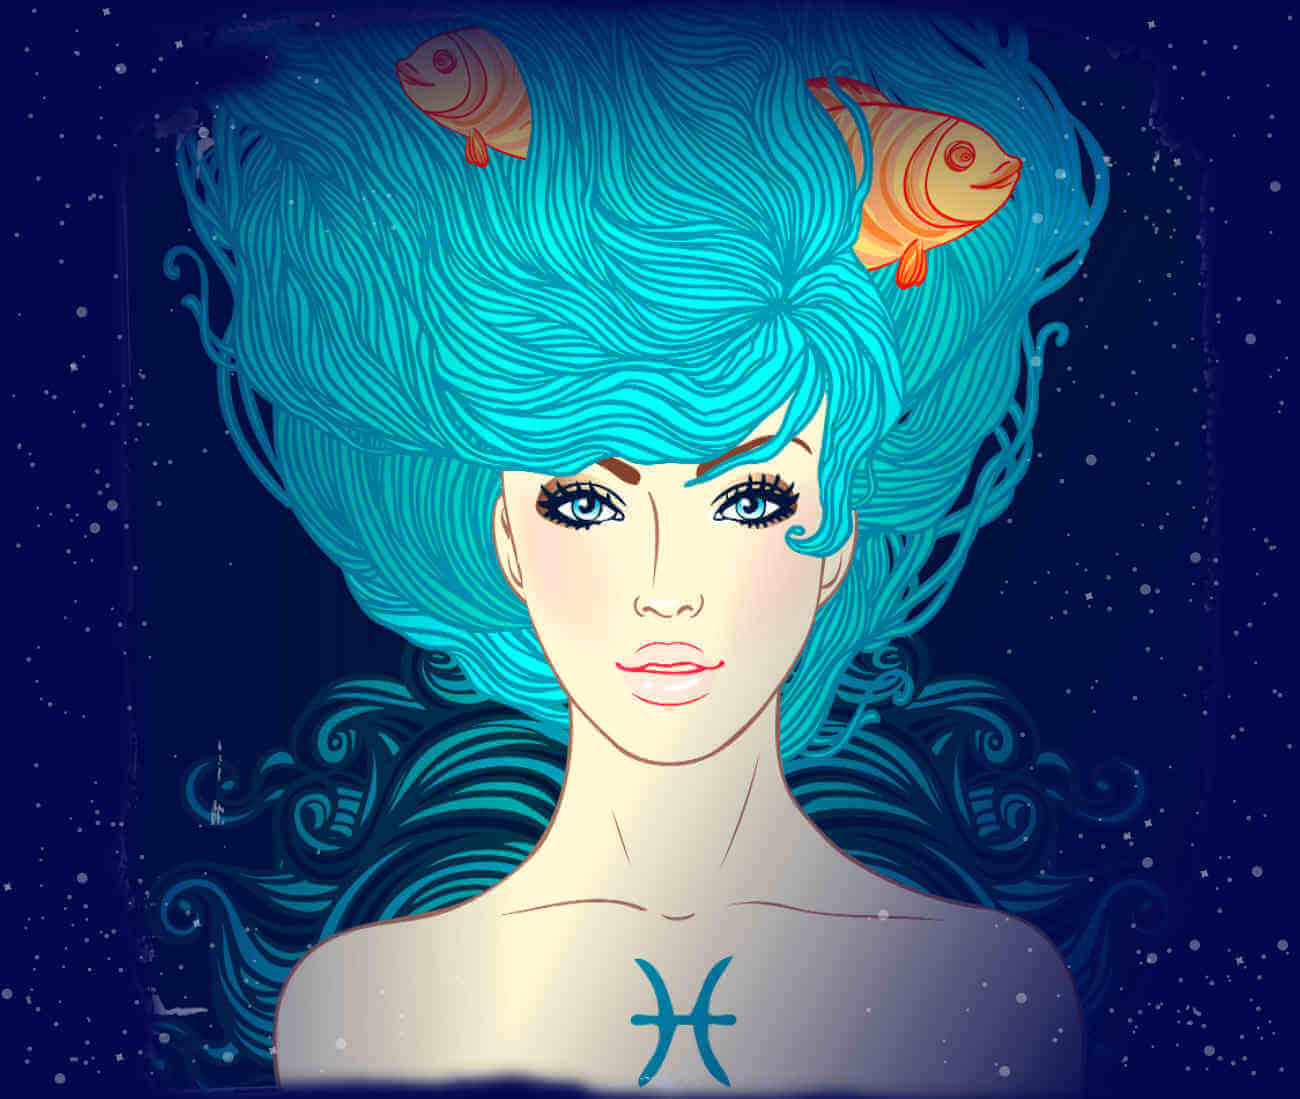 horoscope 2020 Pisces zodiac sign